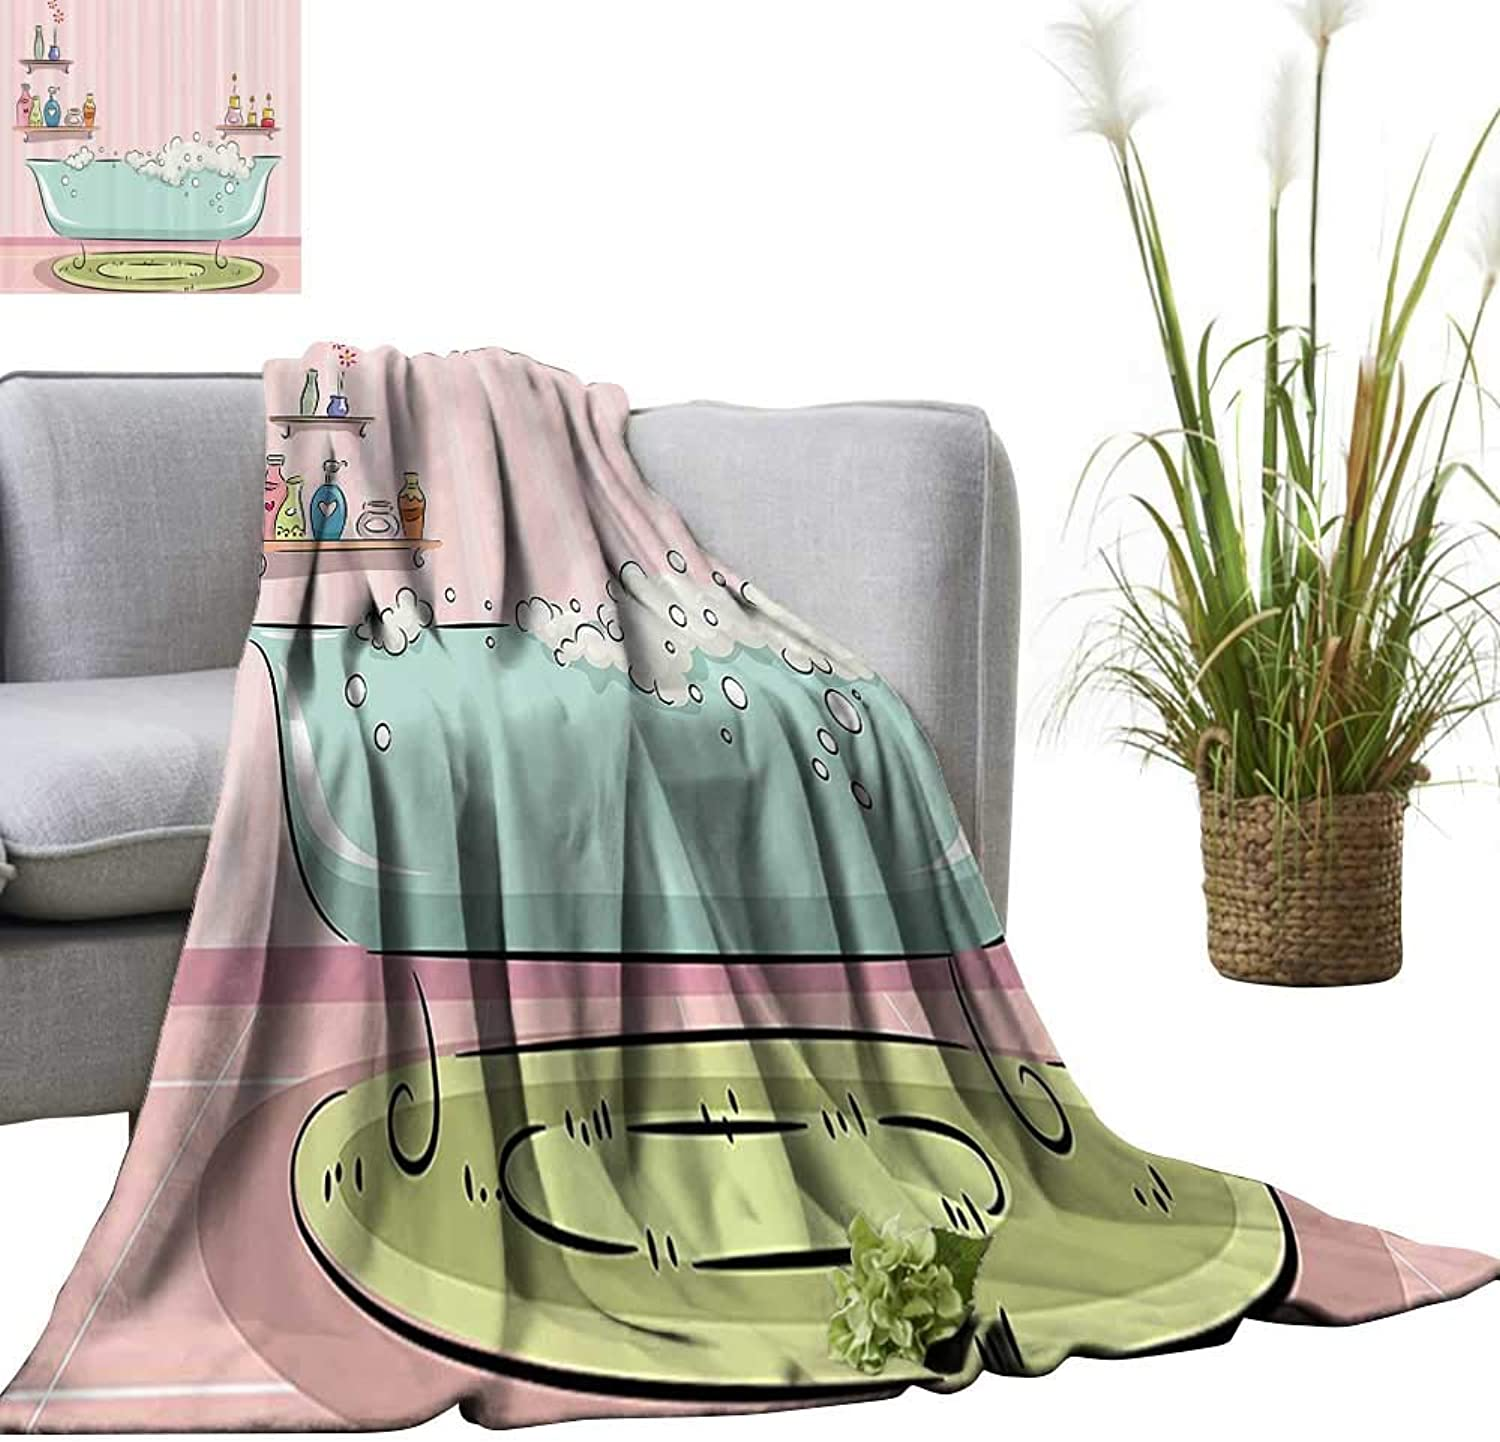 YOYI Baby Blanket ecti of Bathtub with Bubbles in Girly Room Aroma Oil Lamps Aromatherapy Indoor Outdoor, Comfortable for All Seasons 50 x70